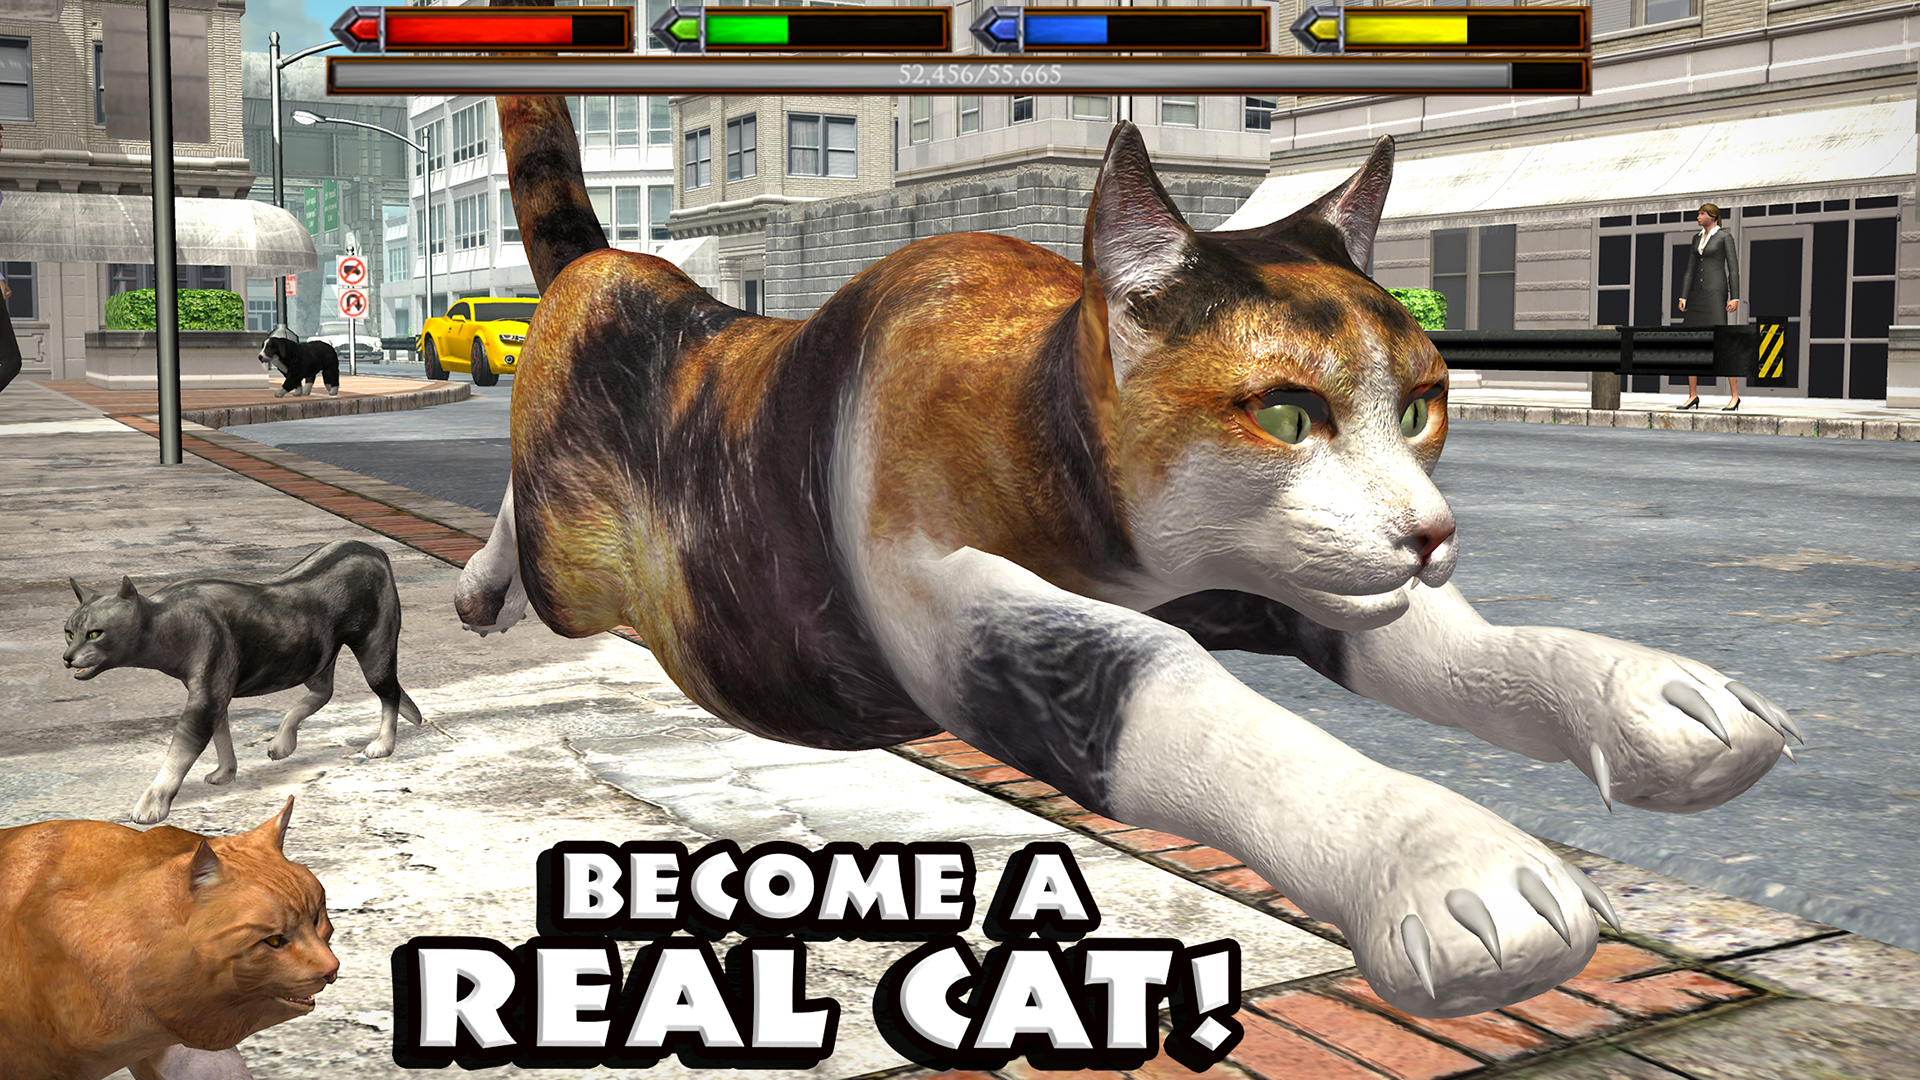 Ultimate Cat Simulator: Amazon.fr: Appstore pour Android